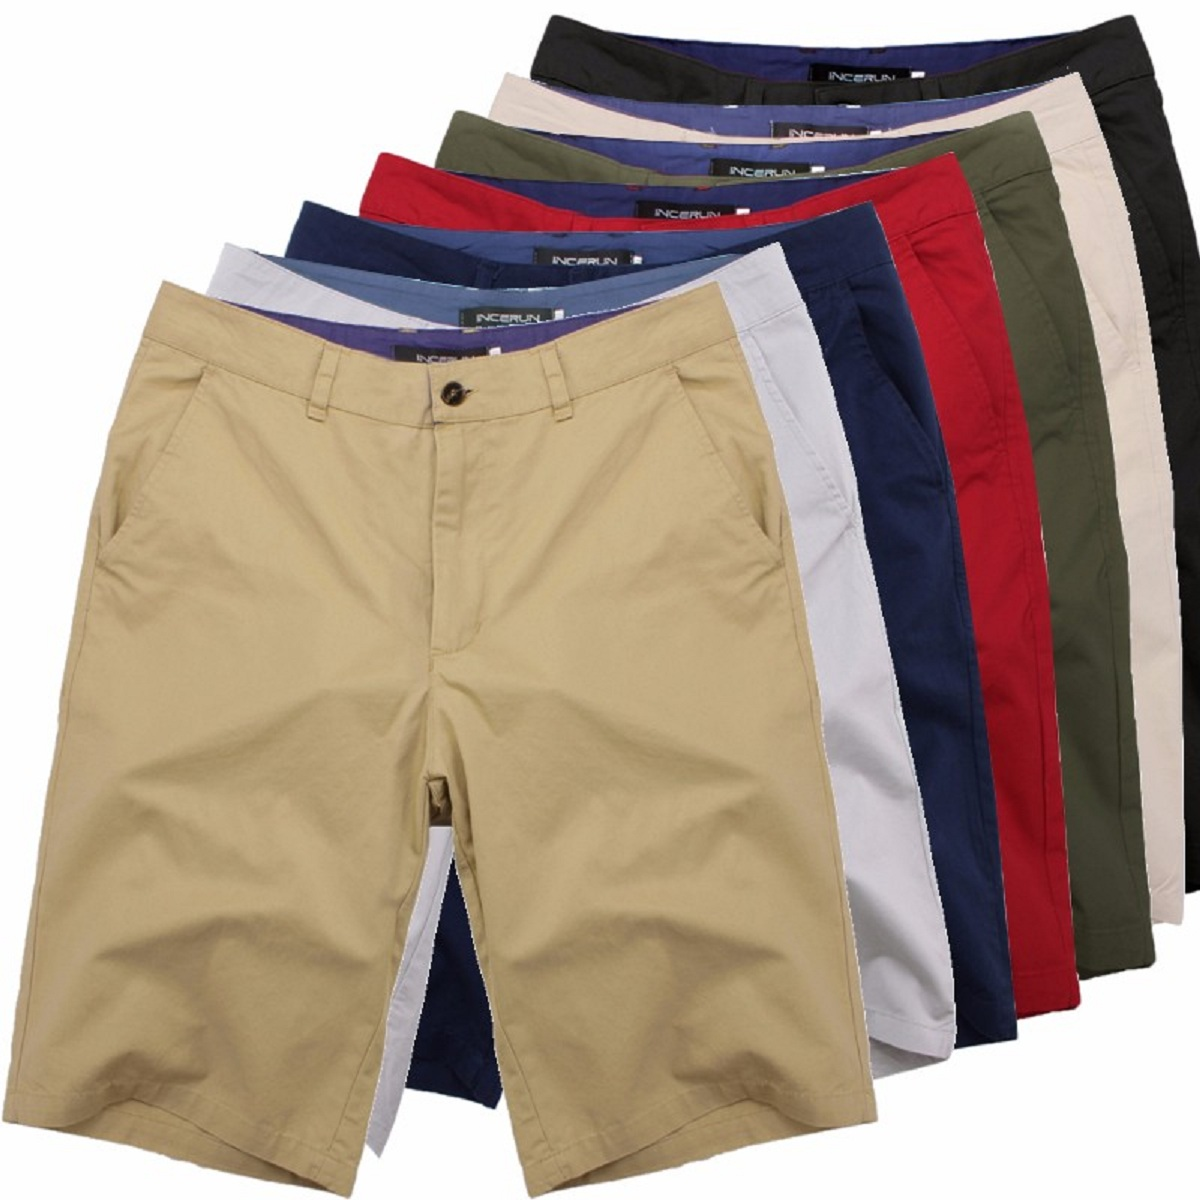 Shorts Vintage Chinos Knee-Length Cotton Casual Fashion Big Masculina 44 Men Large-Size title=